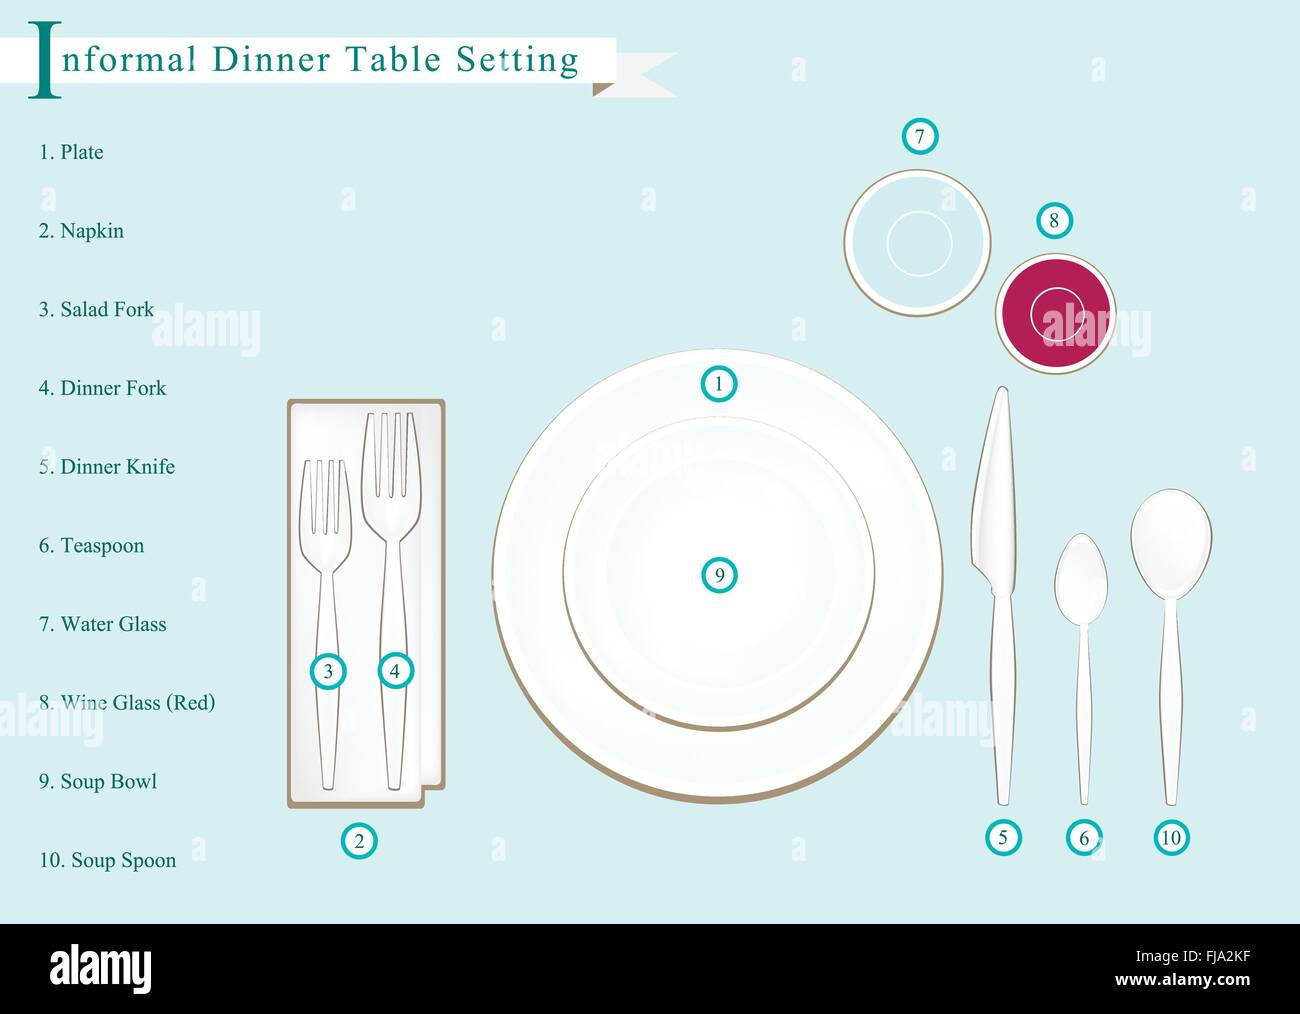 Formal Dinner Business Dinner or Formal Dinner Place Setting Preparing for Special Occasions.  sc 1 st  Alamy & Formal Dinner Business Dinner or Formal Dinner Place Setting Stock ...